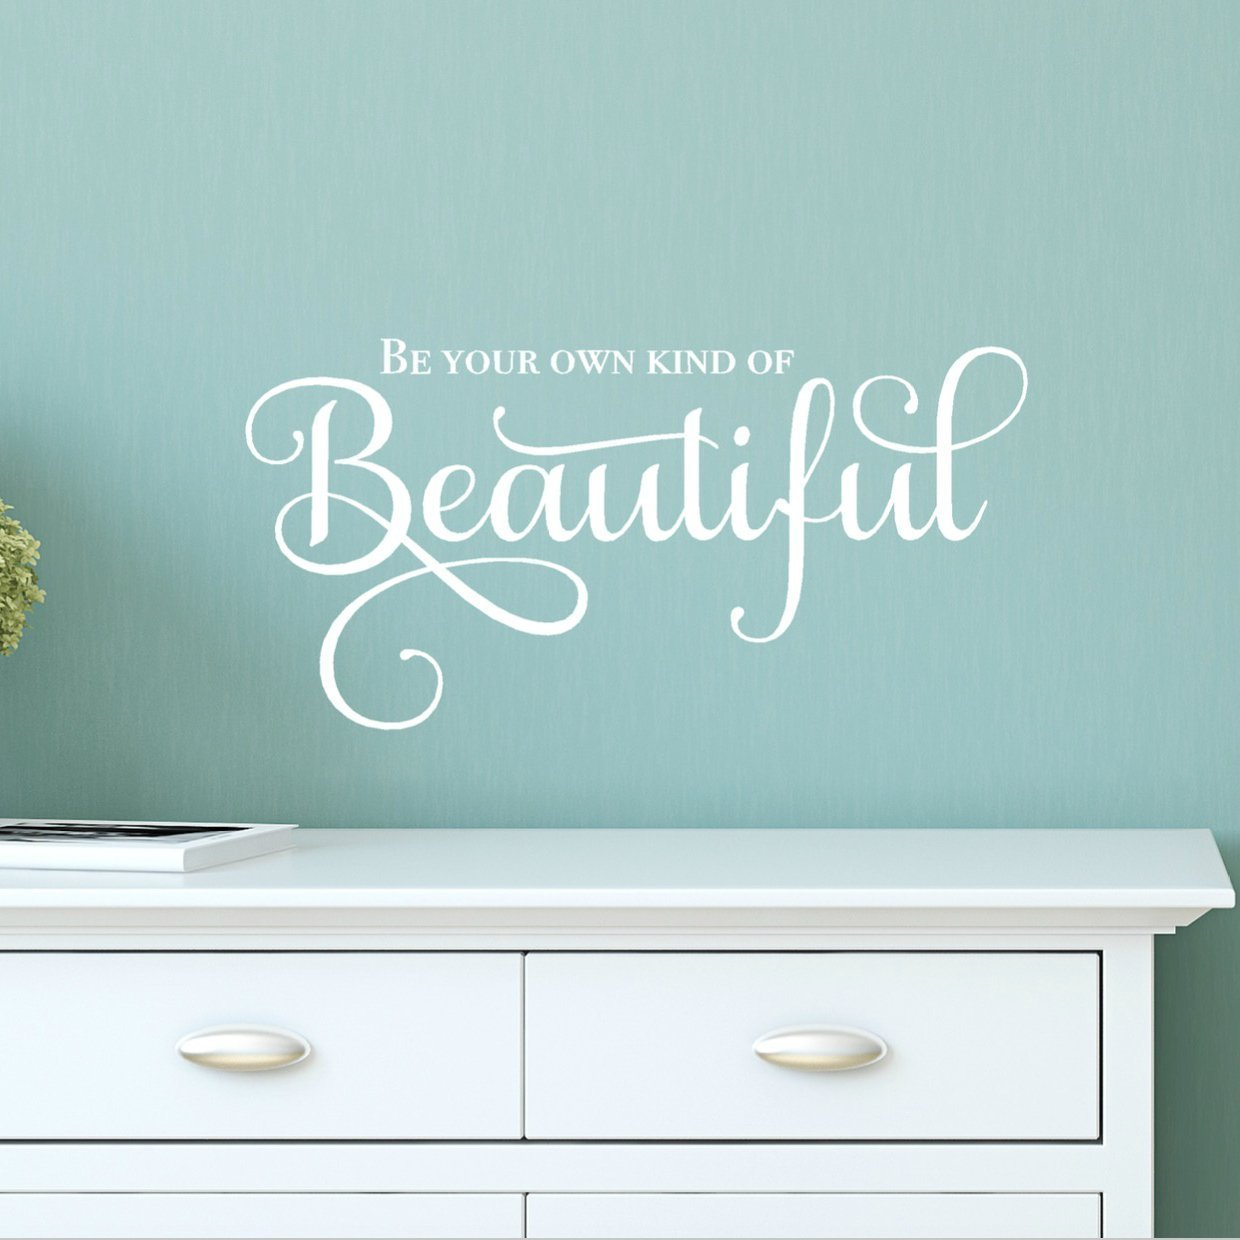 Amazon com vinylwritten be your own kind of beautiful quote wall decal girl inspirational wall sticker 24w x 11 5h white handmade